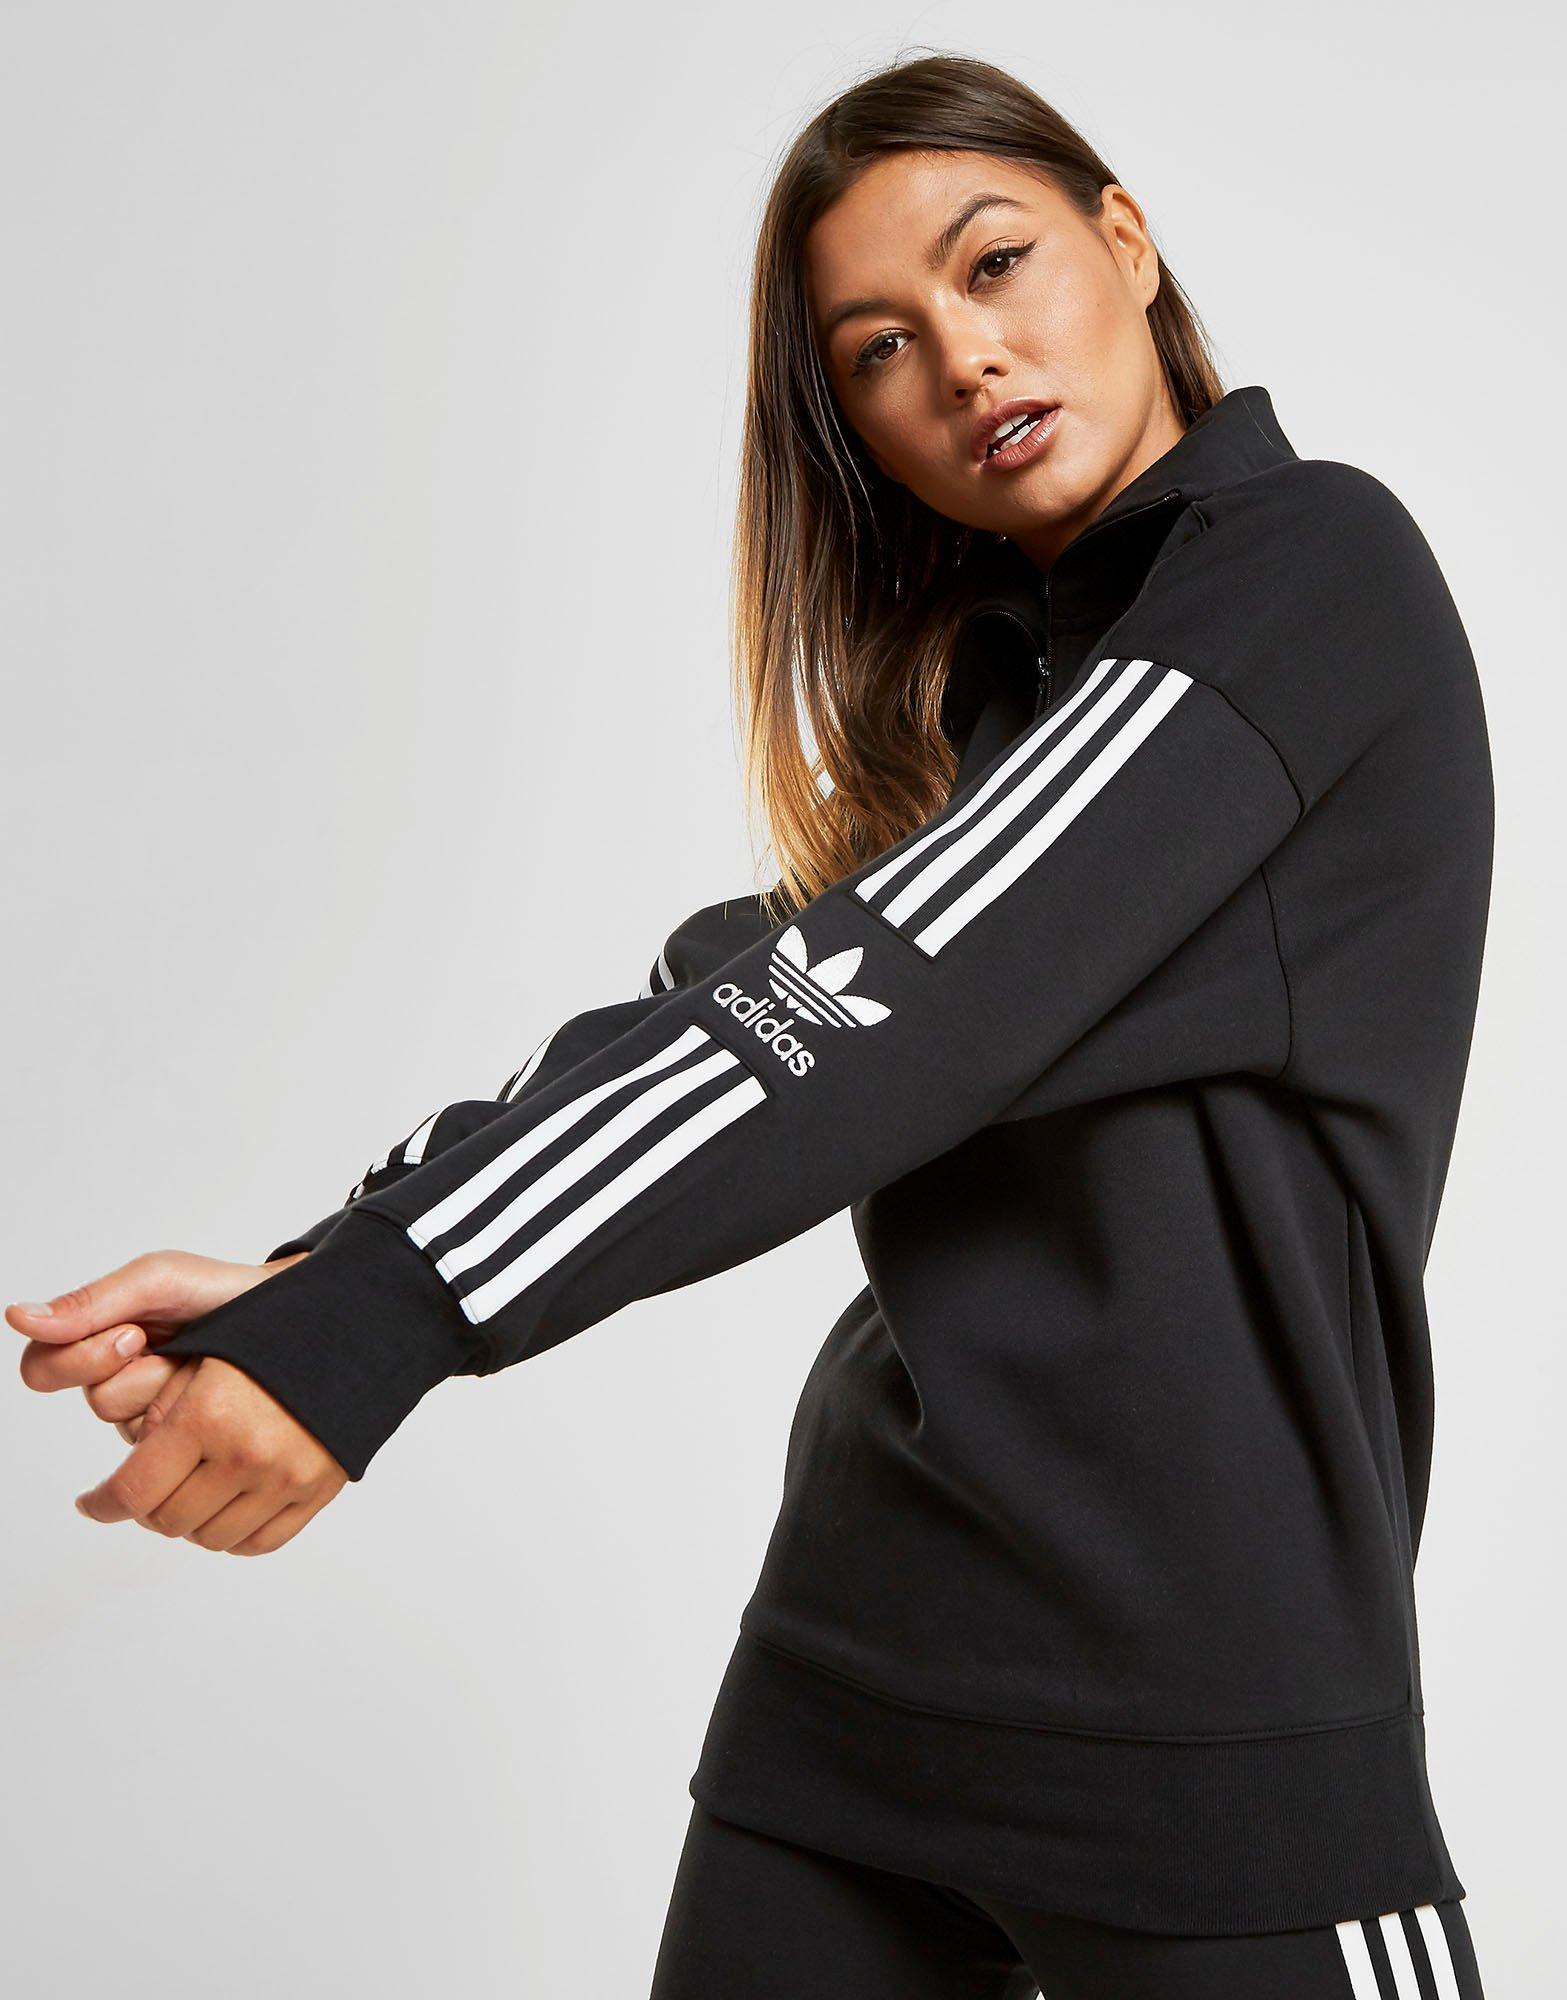 Acherter Noir adidas Originals Sweat-shirt